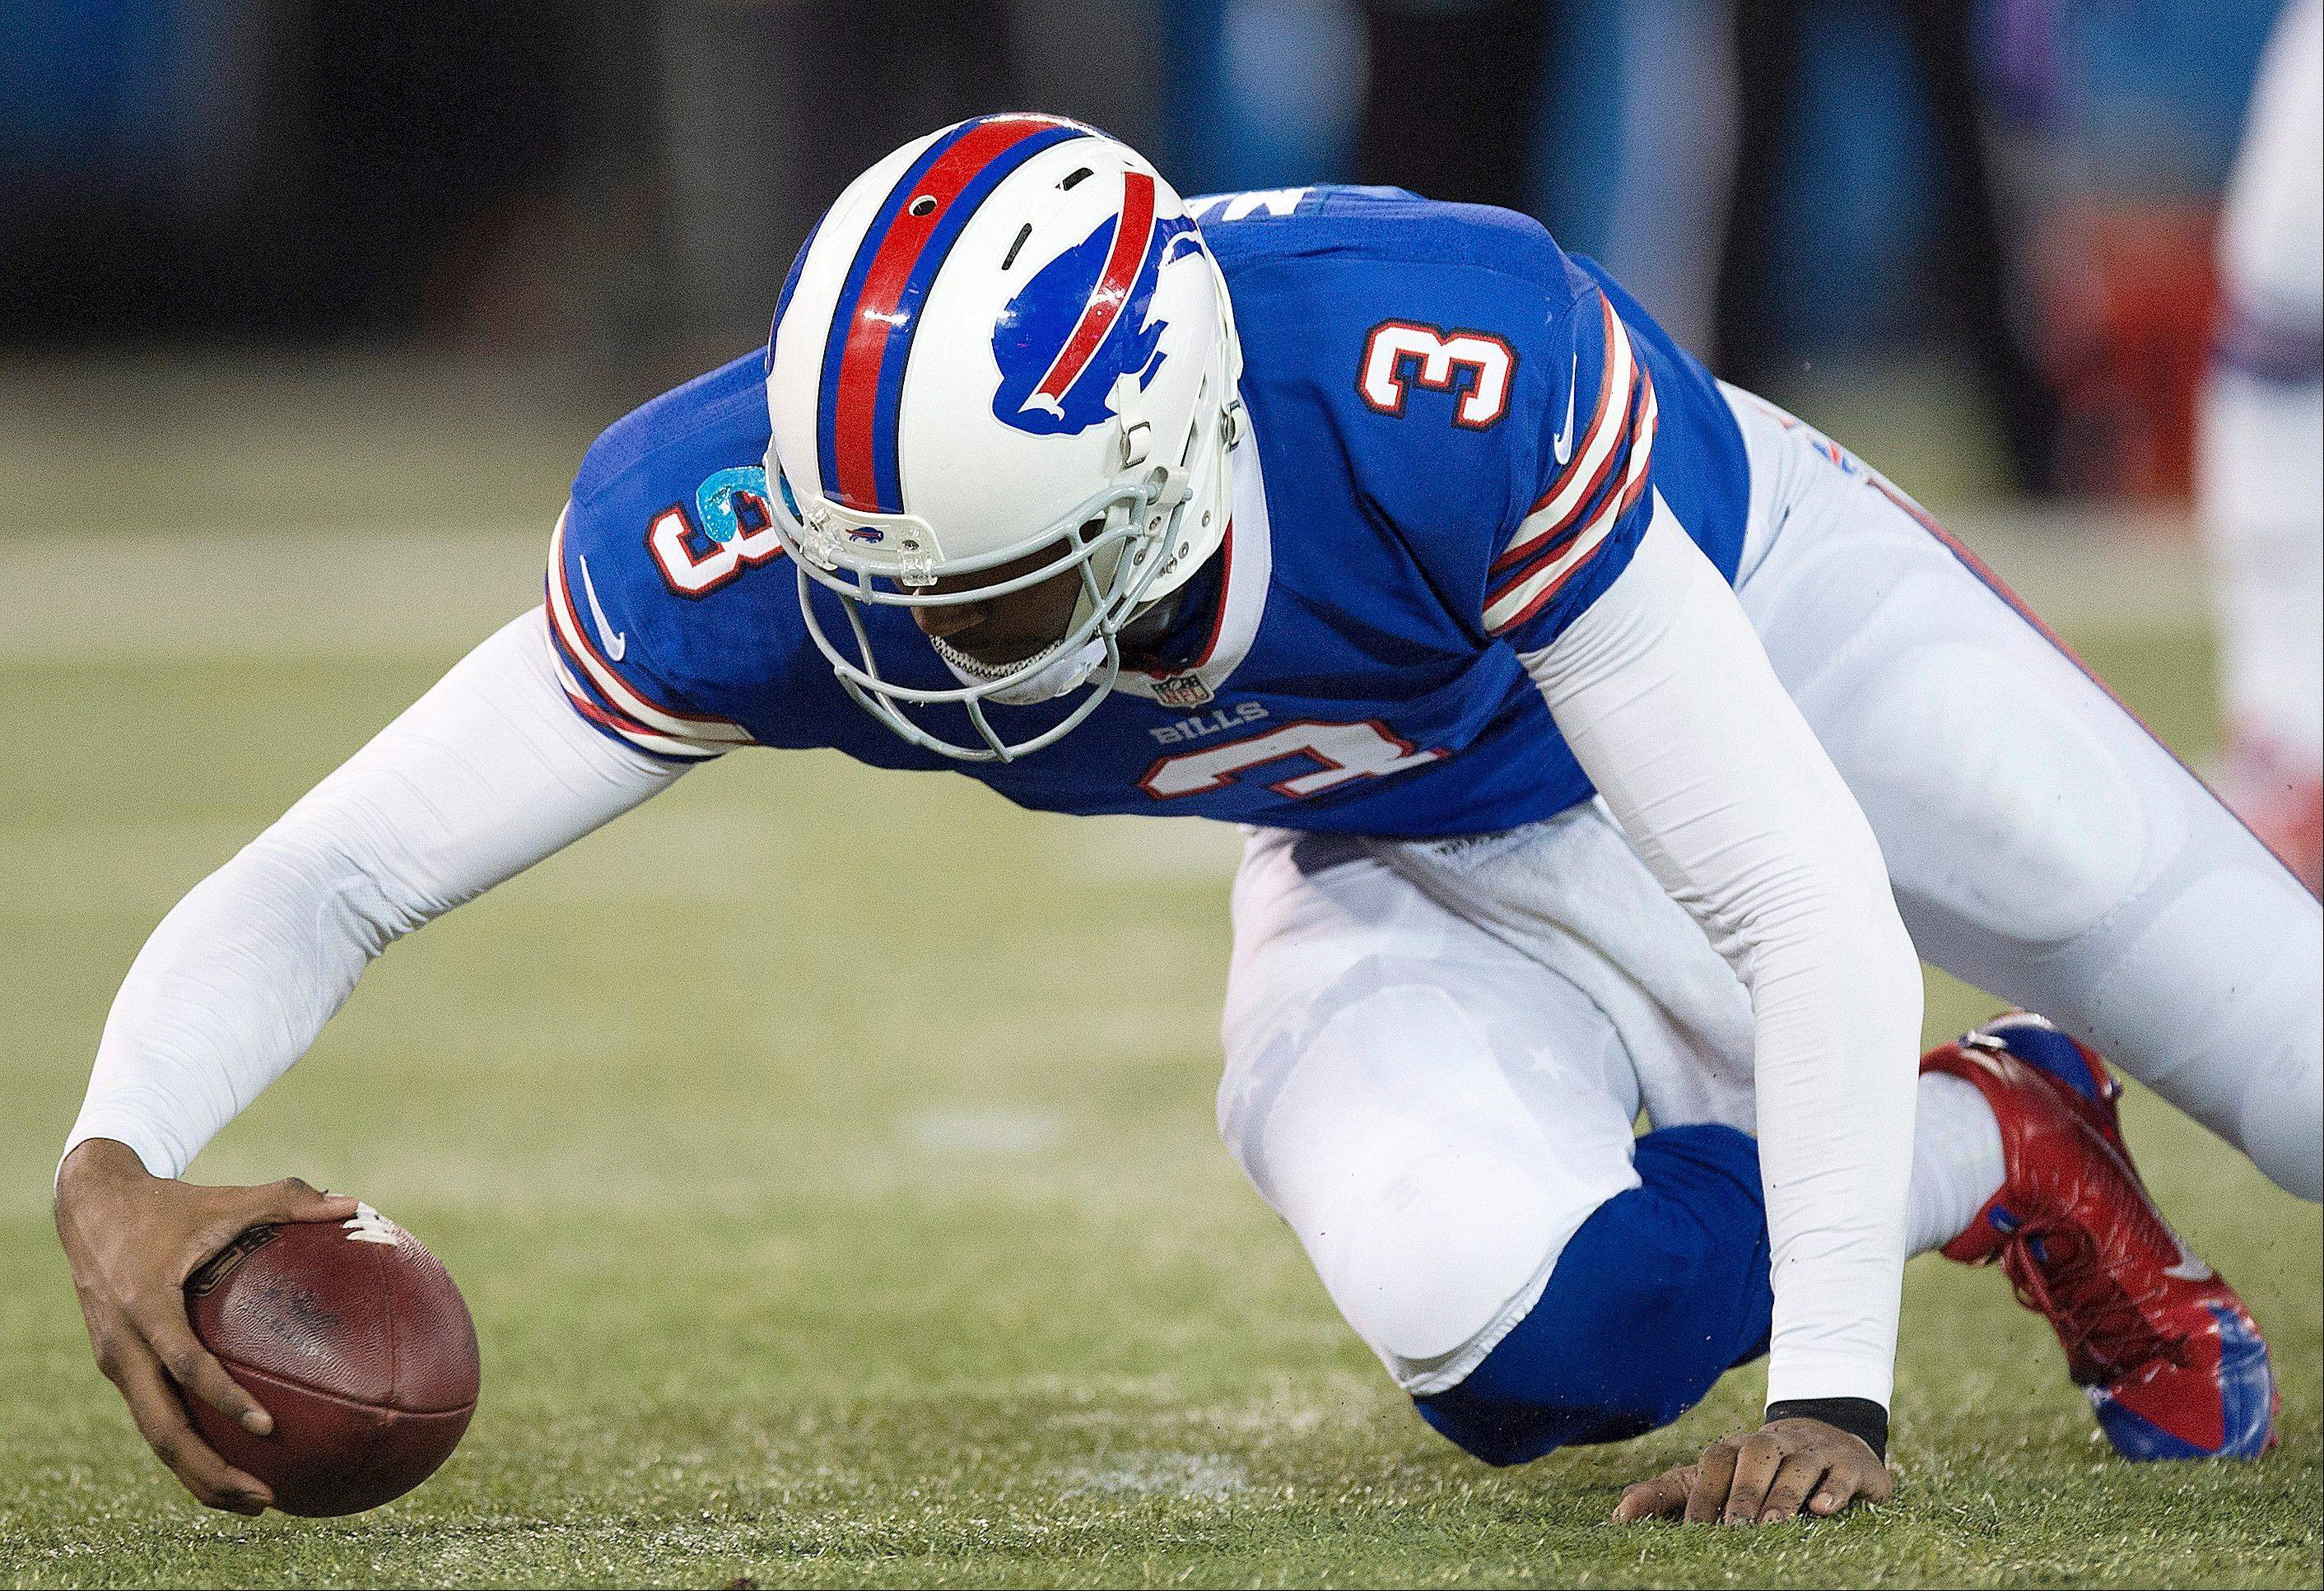 Buffalo Bills quarterback EJ Manuel recovers his own fumble against the Atlanta Falcons during first half NFL football action in Toronto on Sunday.